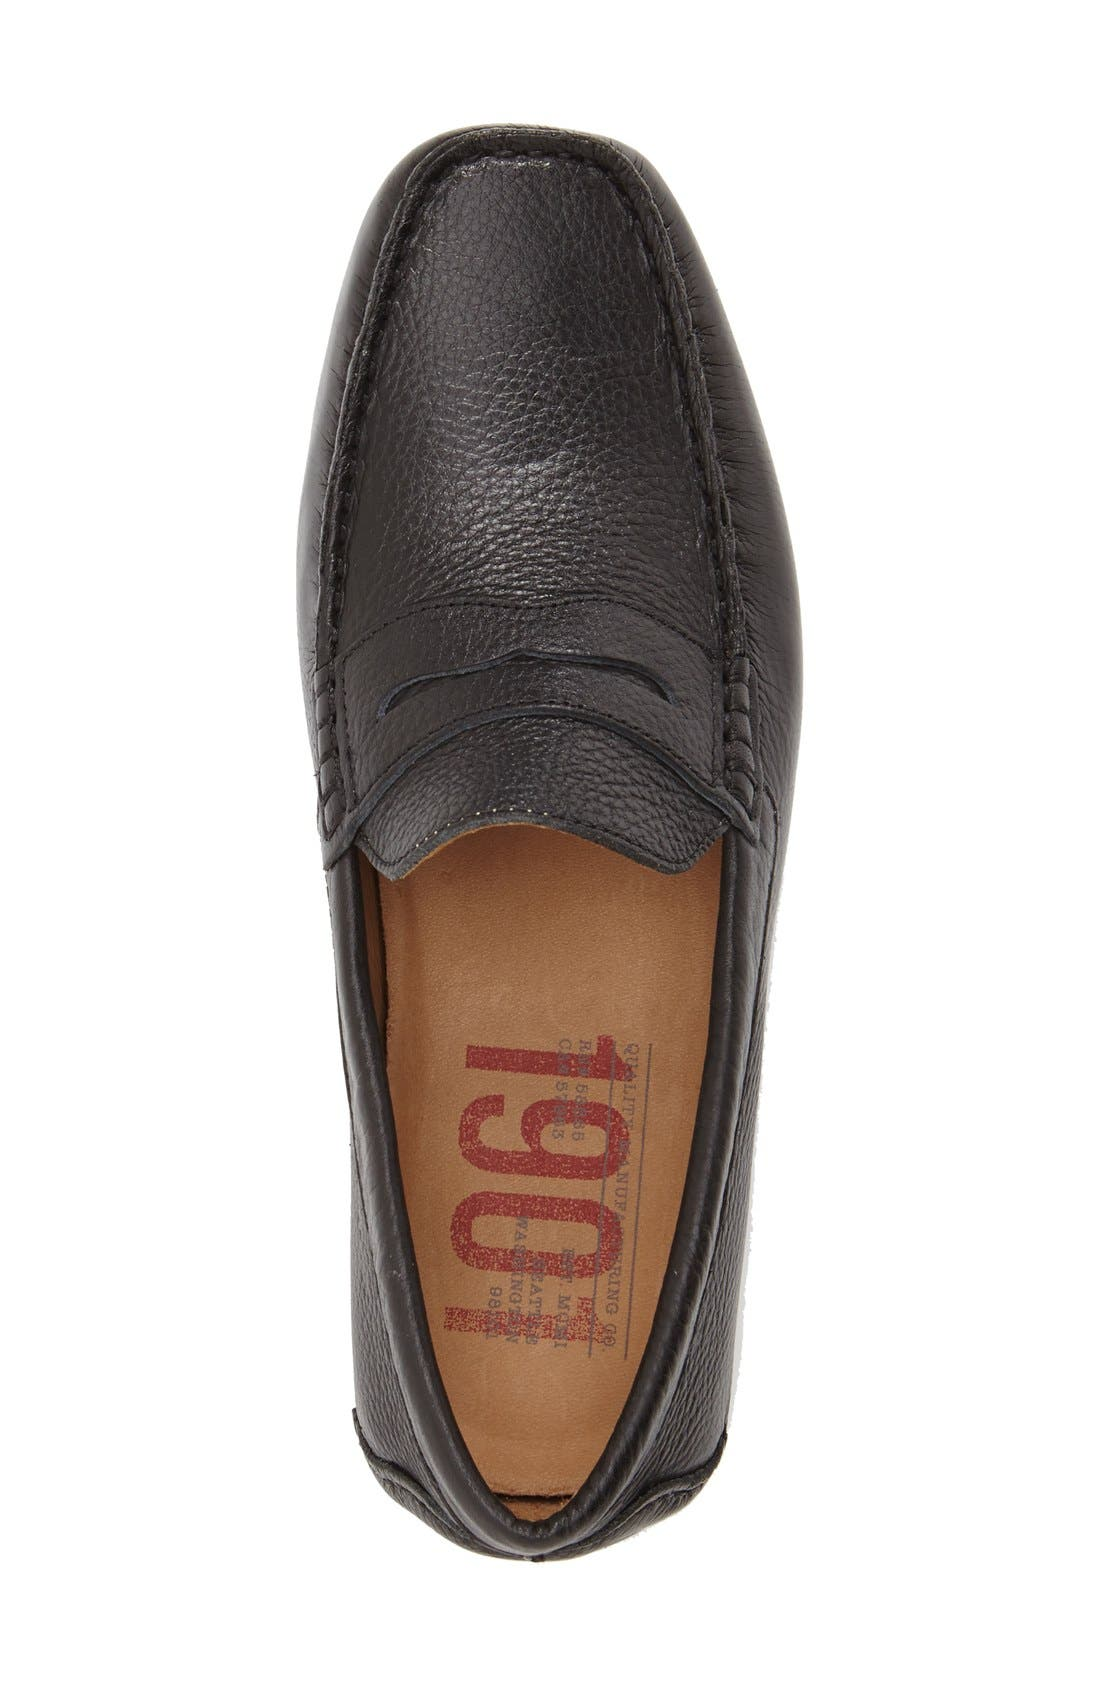 'Bermuda' Penny Loafer,                             Alternate thumbnail 3, color,                             Black Leather